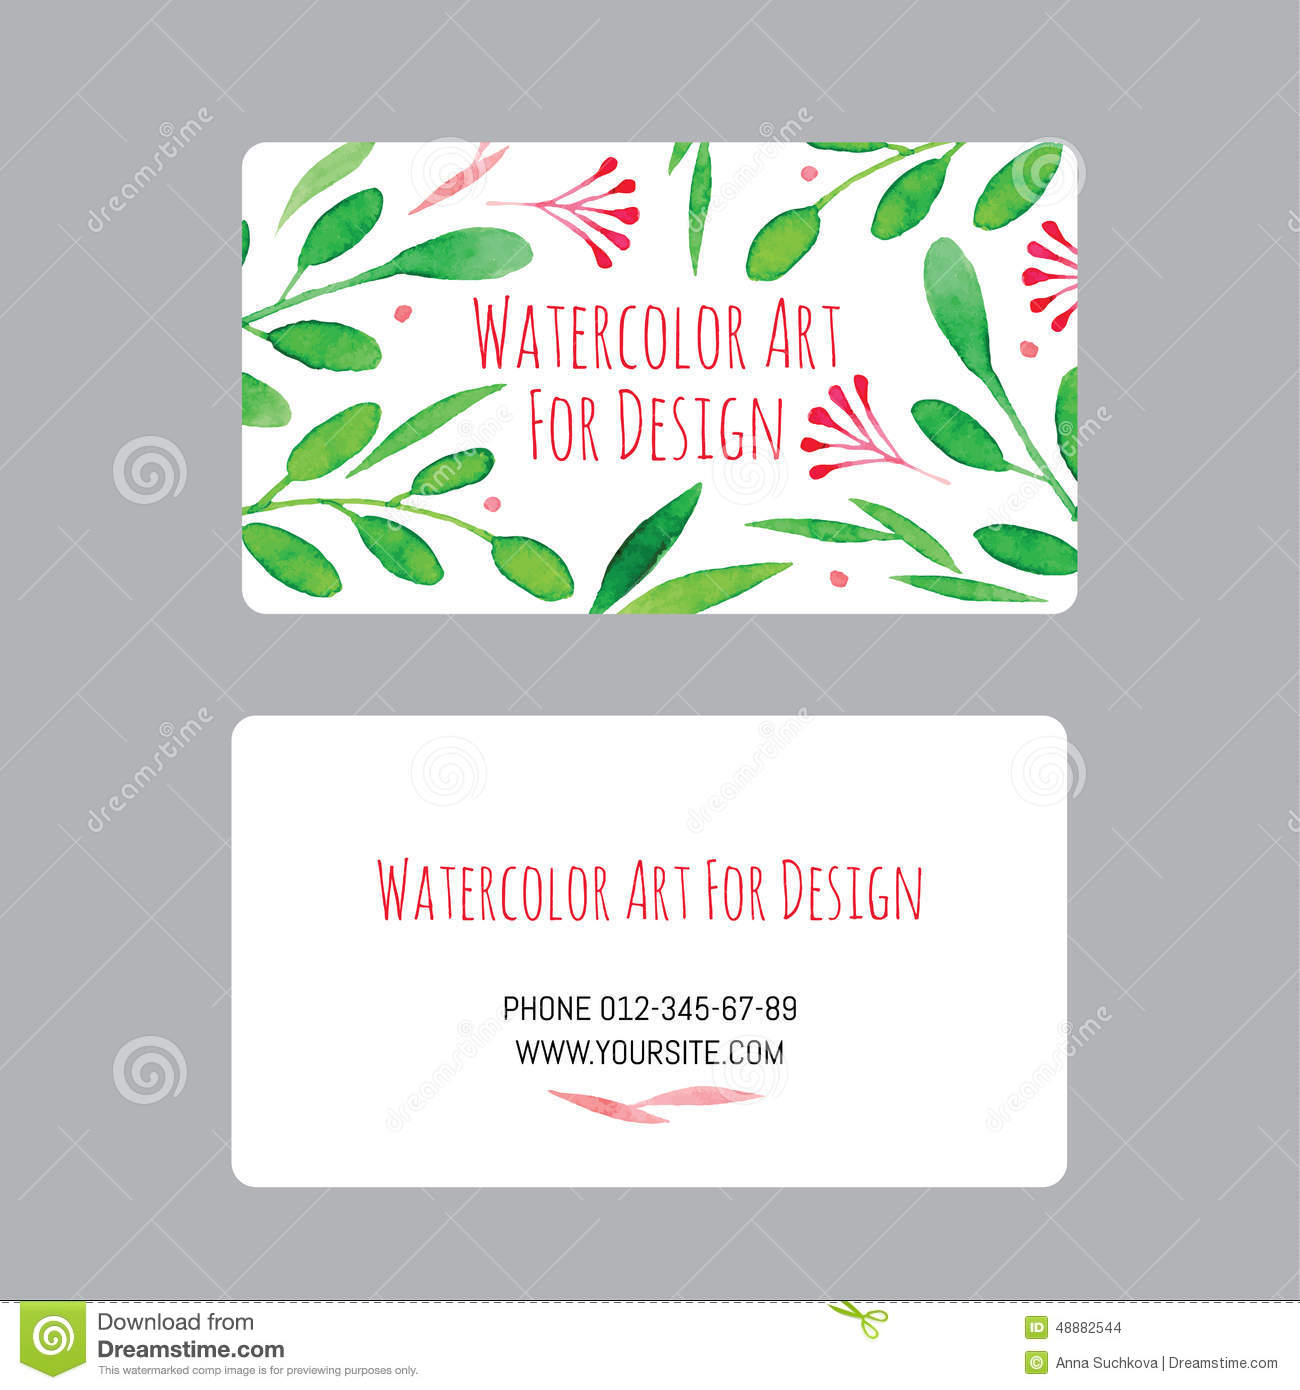 Business cards design template with watercolor drawings of plants business cards design template with watercolor drawings of plants blank card reheart Image collections